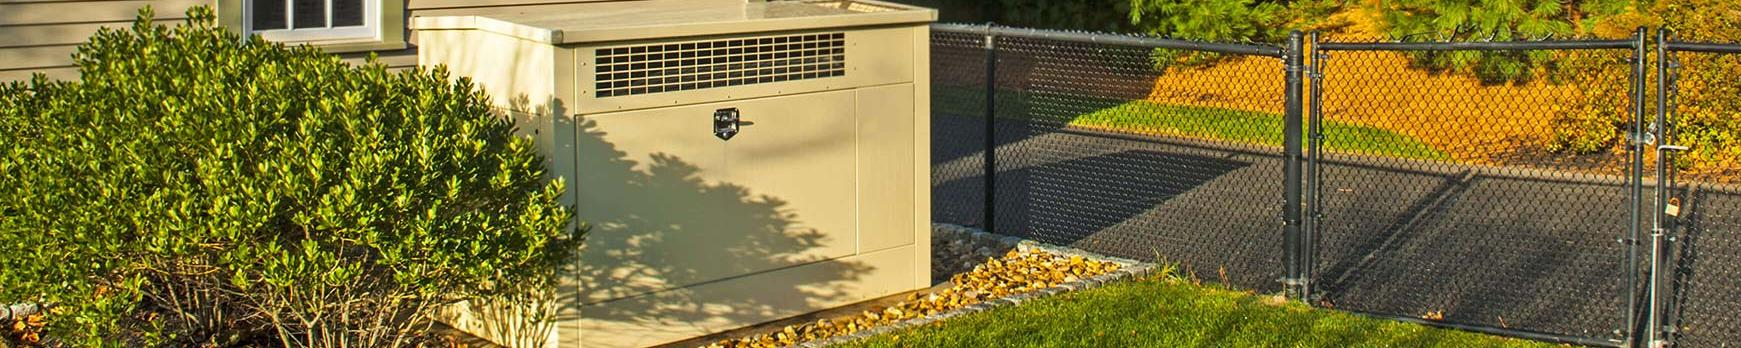 home backup generator in Richmond VA